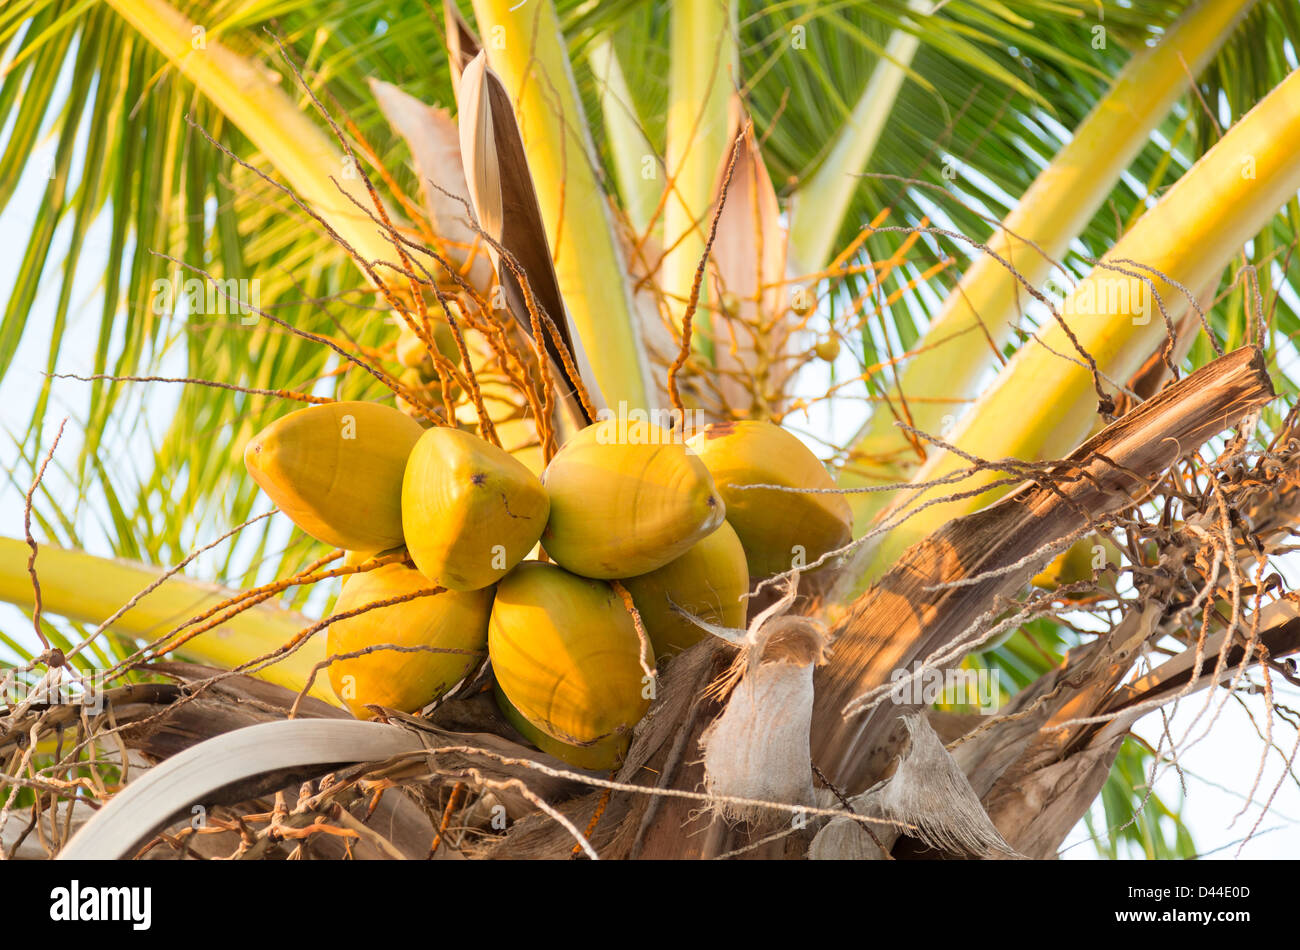 group of yellow coconut fruits in heart of palm tree among fronds